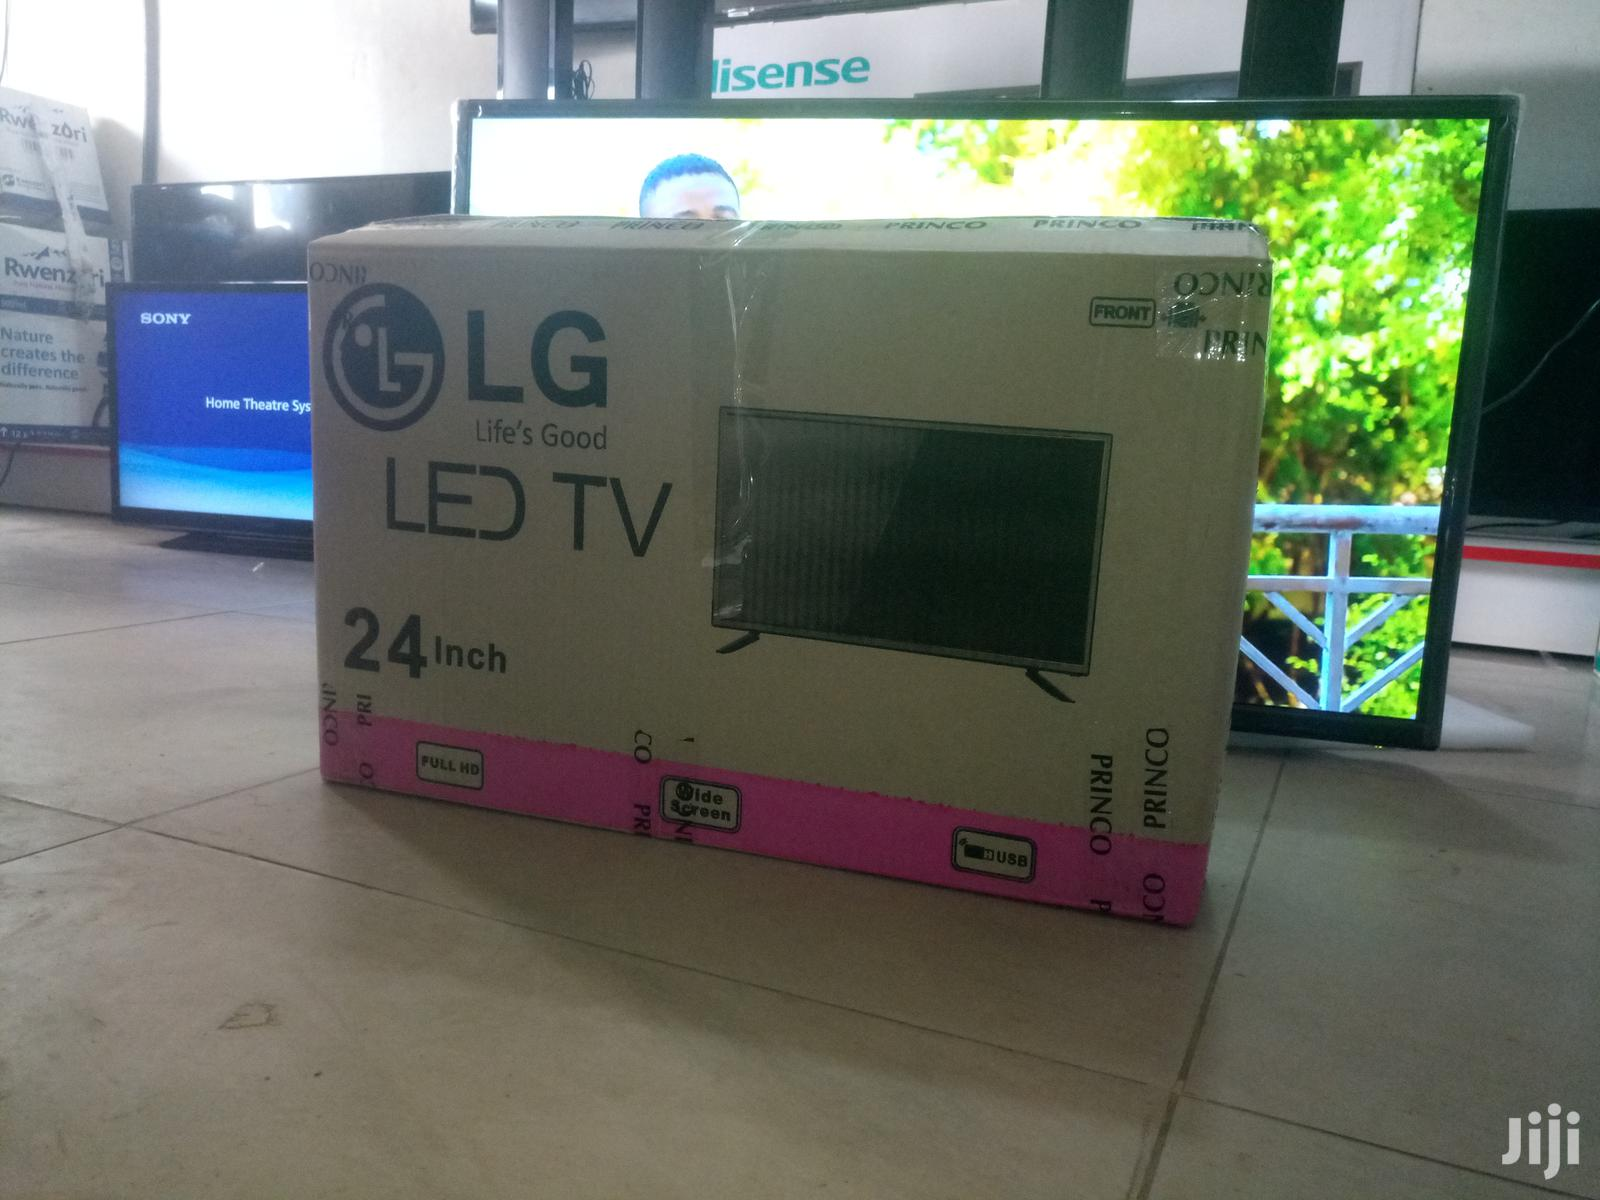 LG LED Flat Screen Digital TV 24 Inches | TV & DVD Equipment for sale in Kampala, Central Region, Uganda